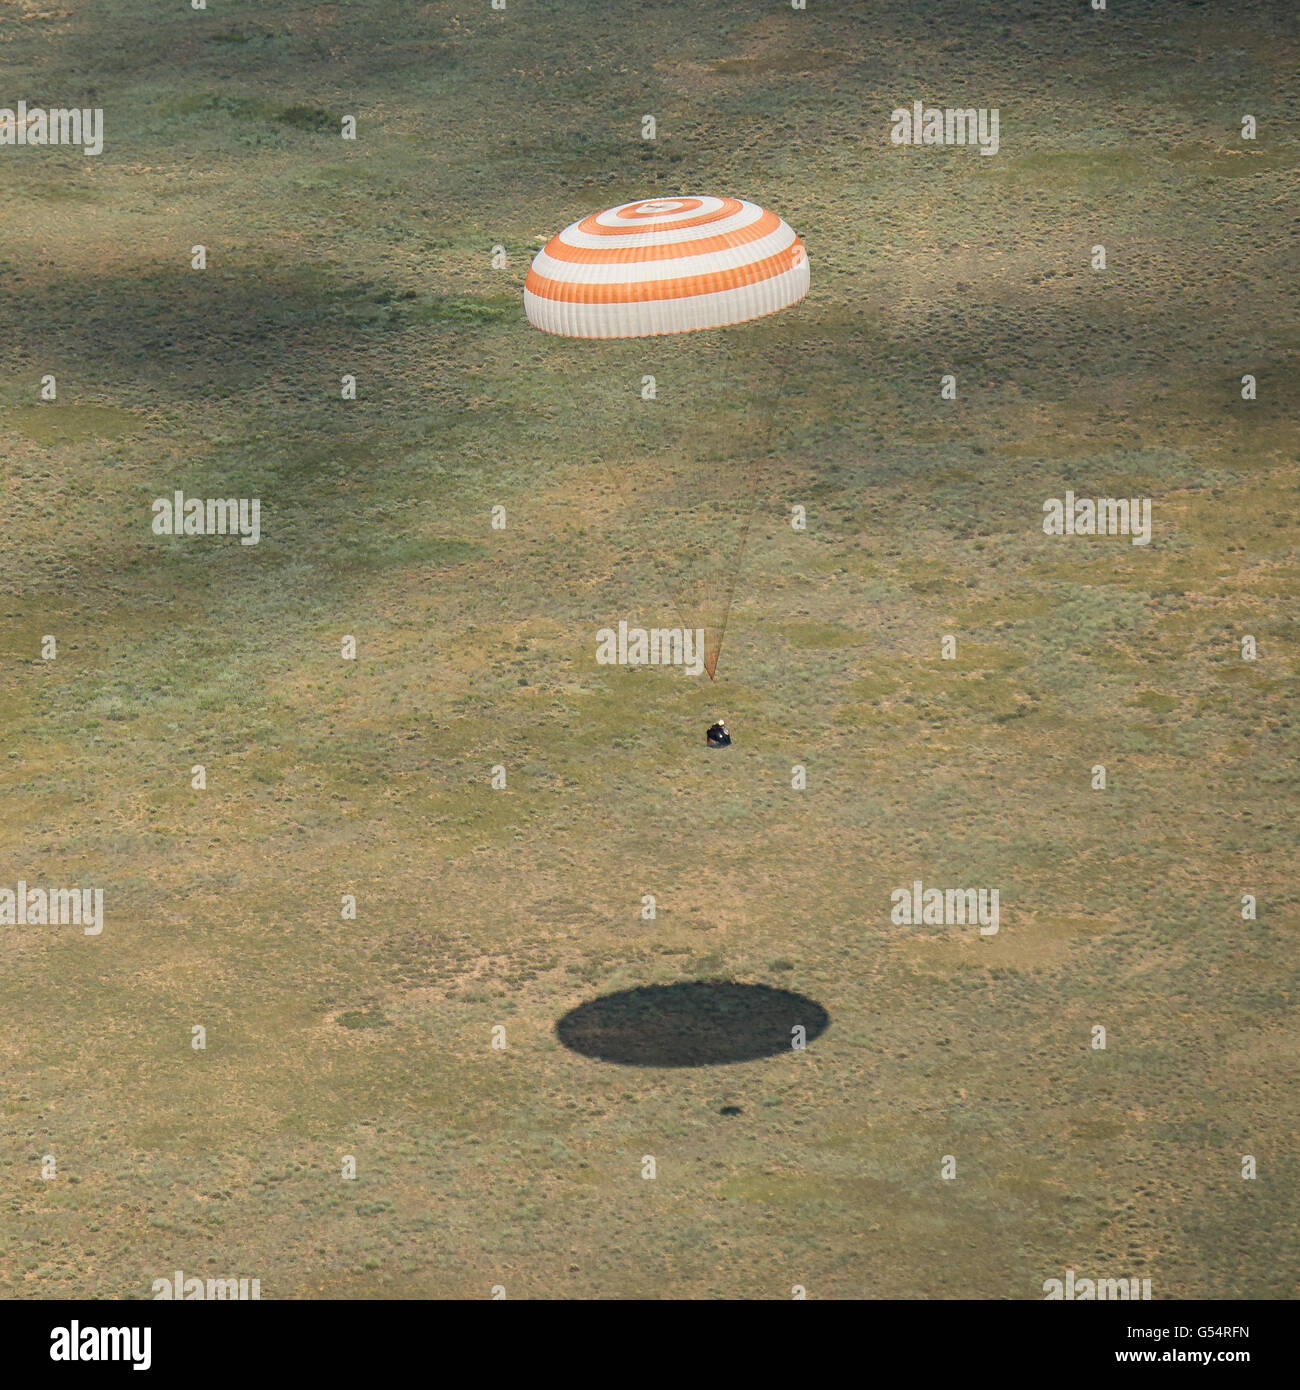 International Space Station crew from Expedition 47 descends aboard the Russian Soyuz TMA-19M spacecraft to a remote - Stock Image